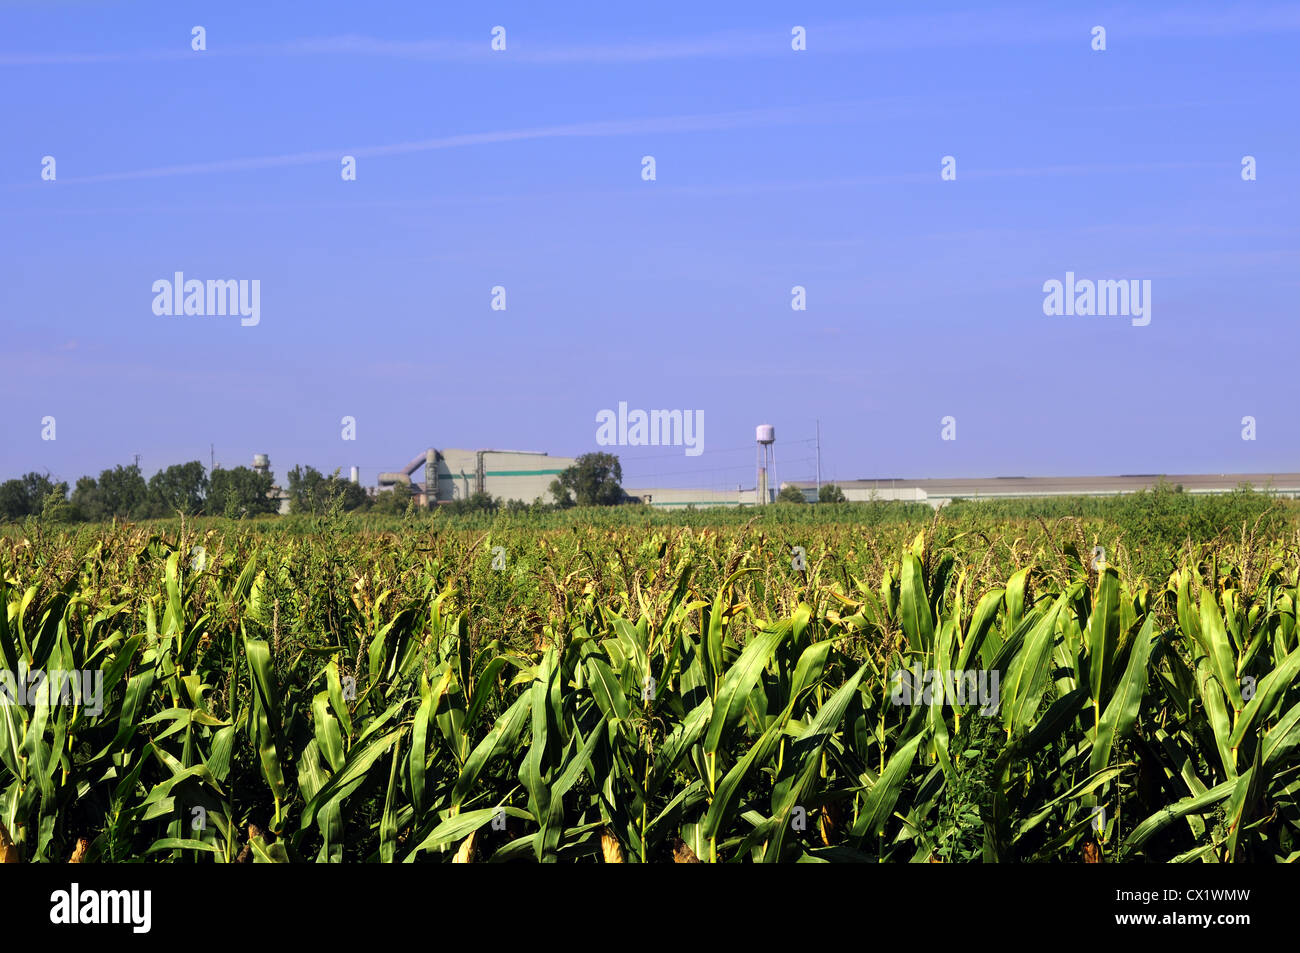 STEEL DYNAMICS SDI in Whitley county Indiana - Stock Image